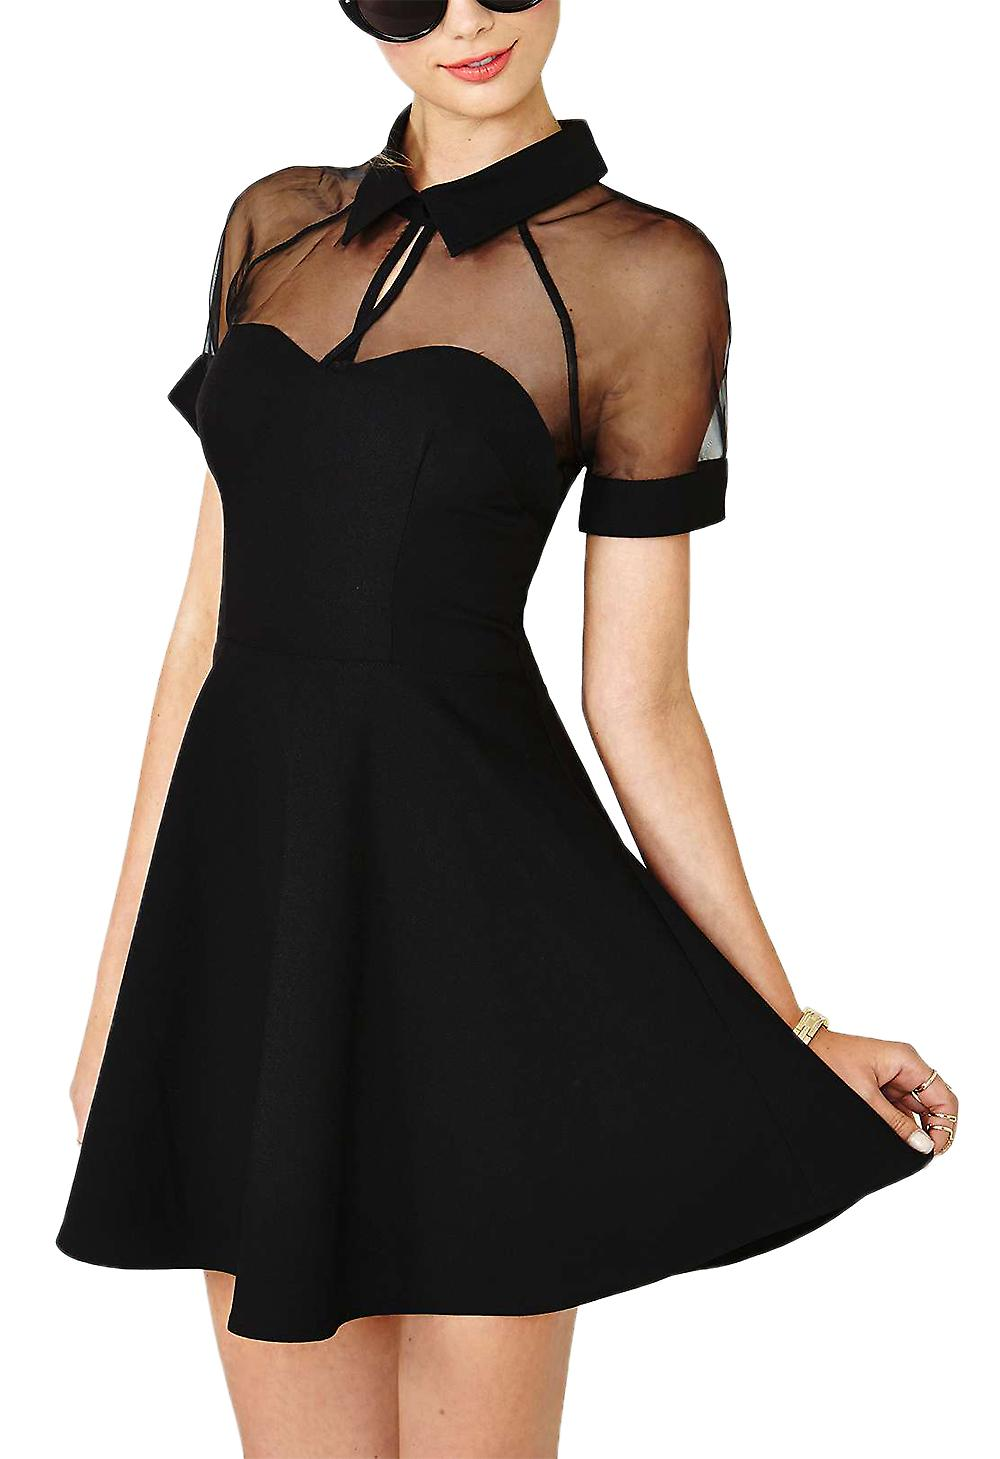 Waooh - transparent dress neckline Ozee